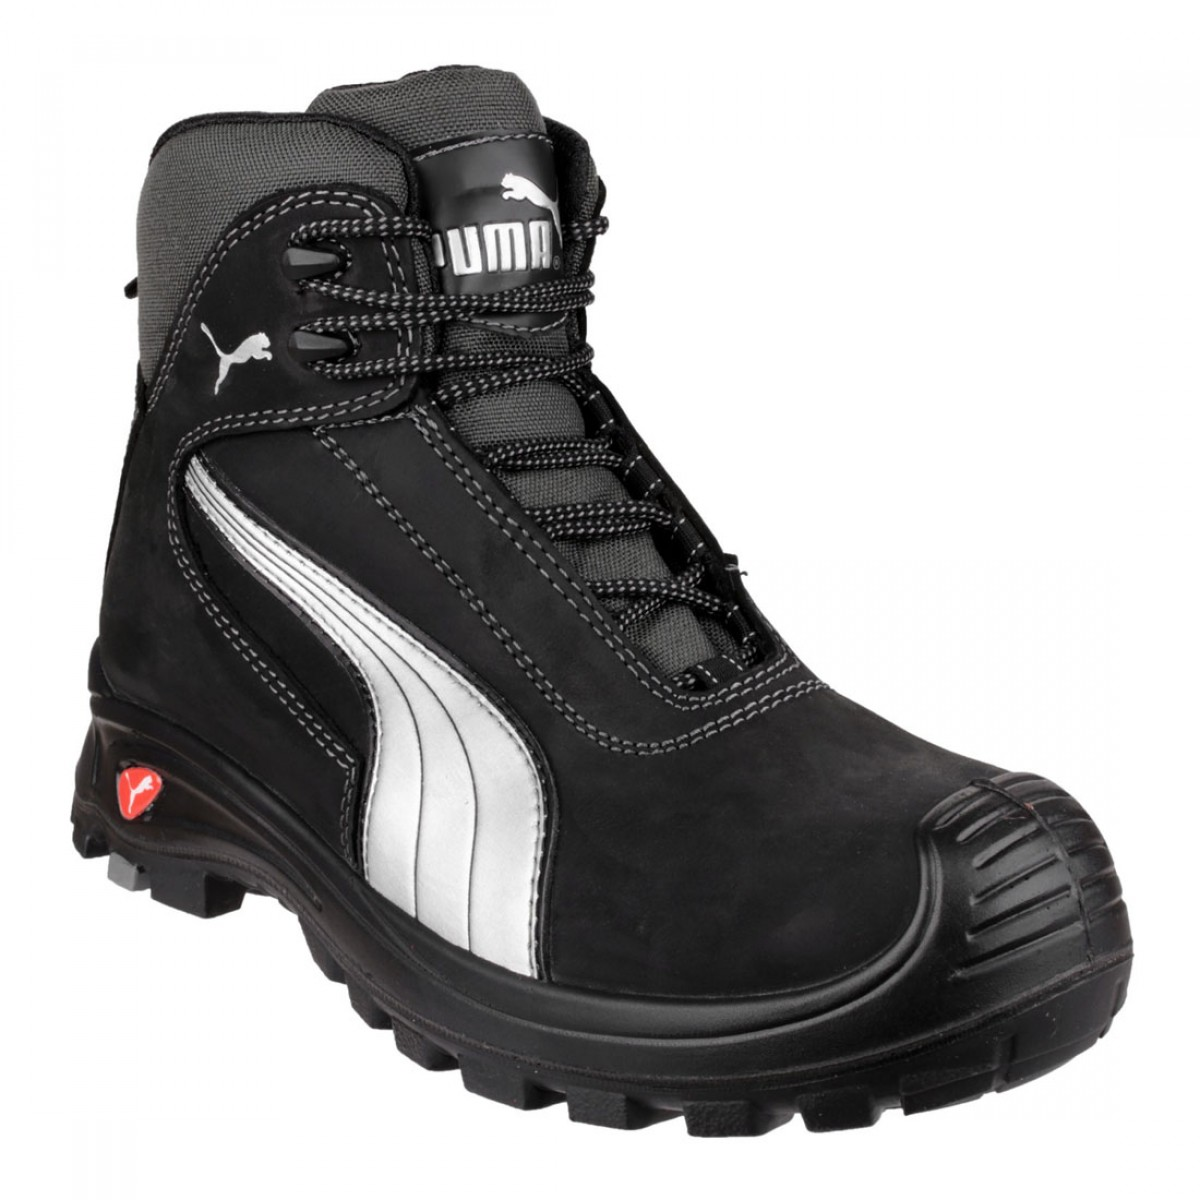 430293ed0c17 Puma Safety Boots Black Metal Free Cascades Mid Mens Work Boots